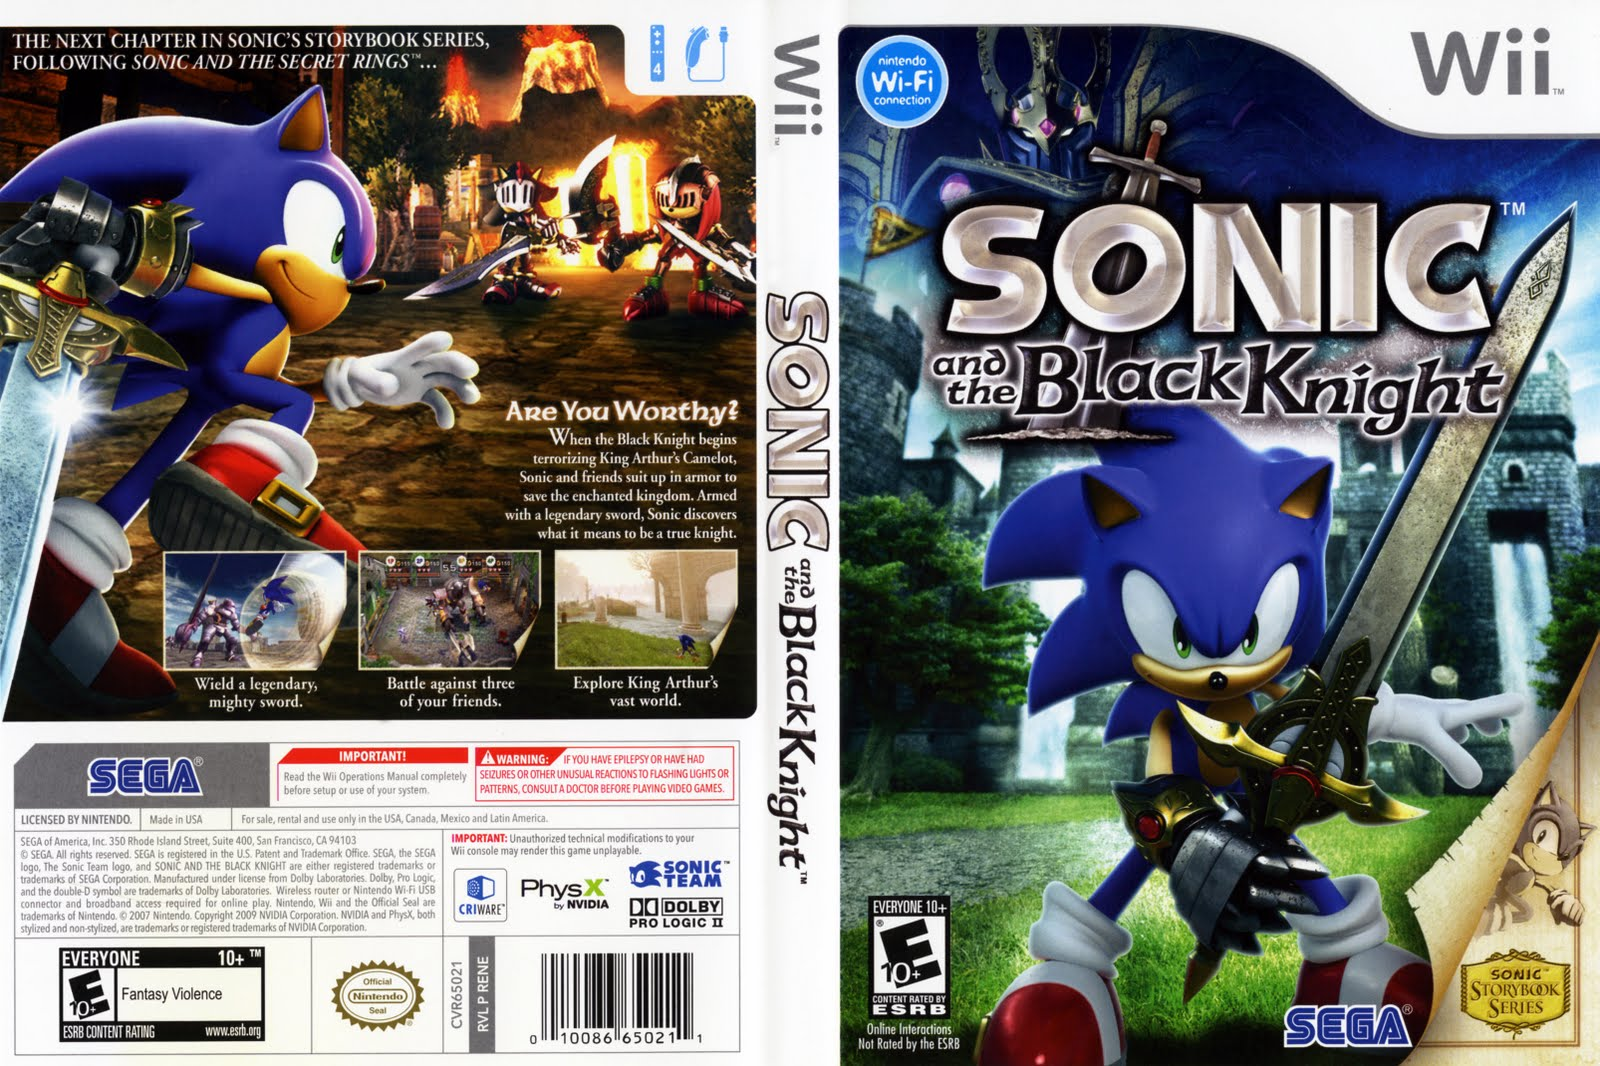 How To Play Sonic The Hedgehog On Pc